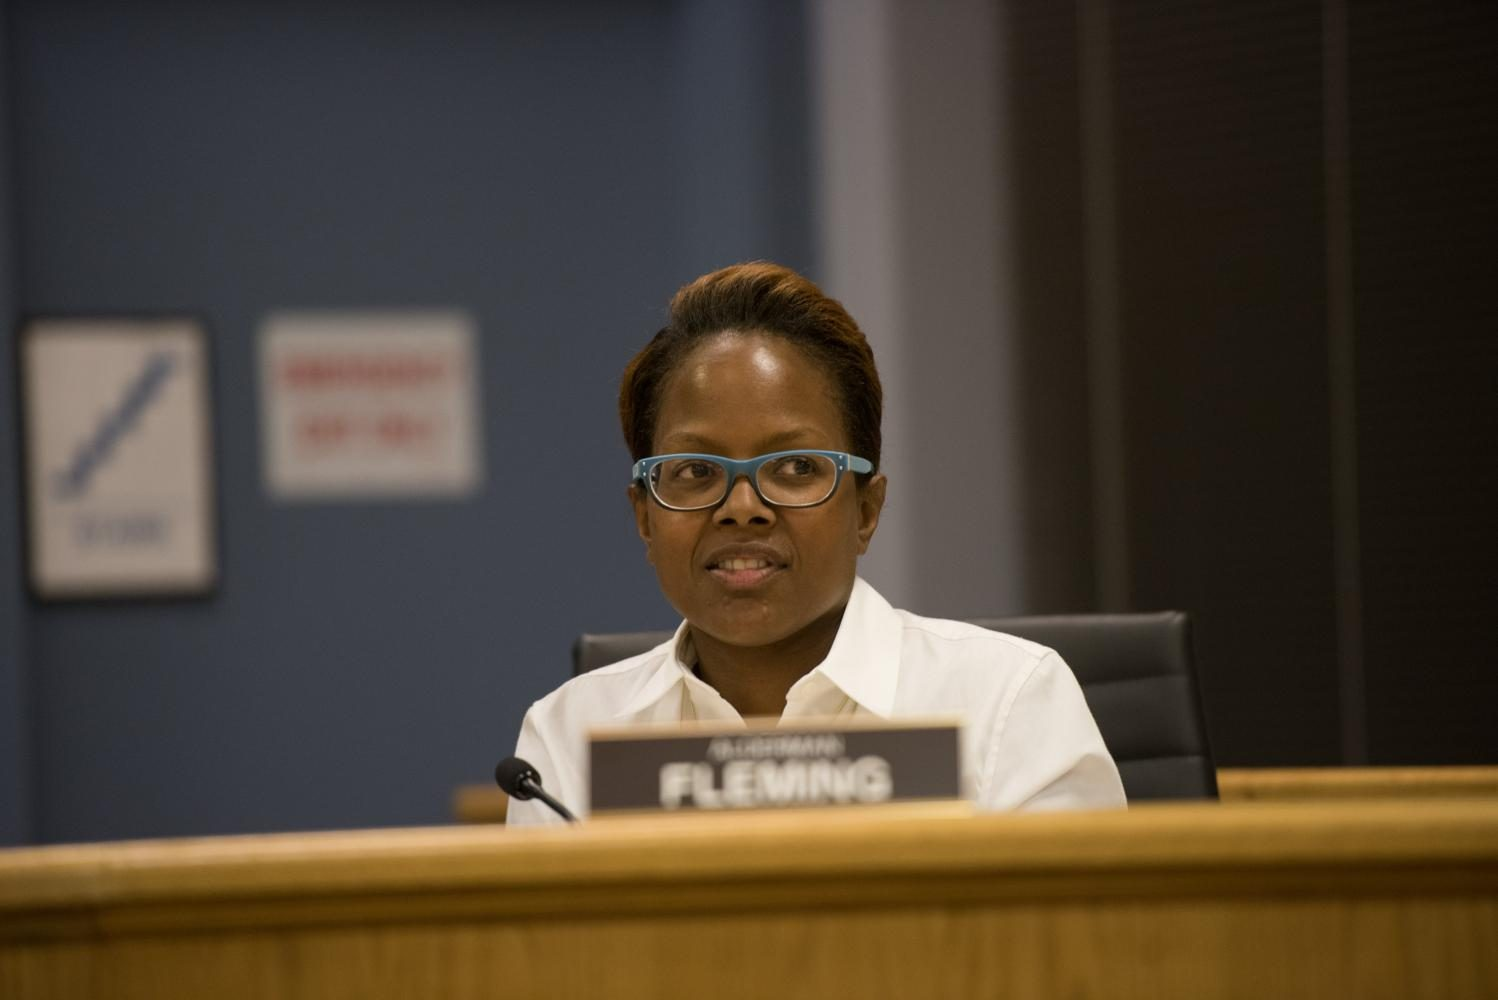 Ald.+Cicely+Fleming.+Fleming+expressed+her+opposition+of+the+adoption+of+the+resolution+to+settle+Shannon+Lamaster+v.+City+of+Evanston+et+al.%0A